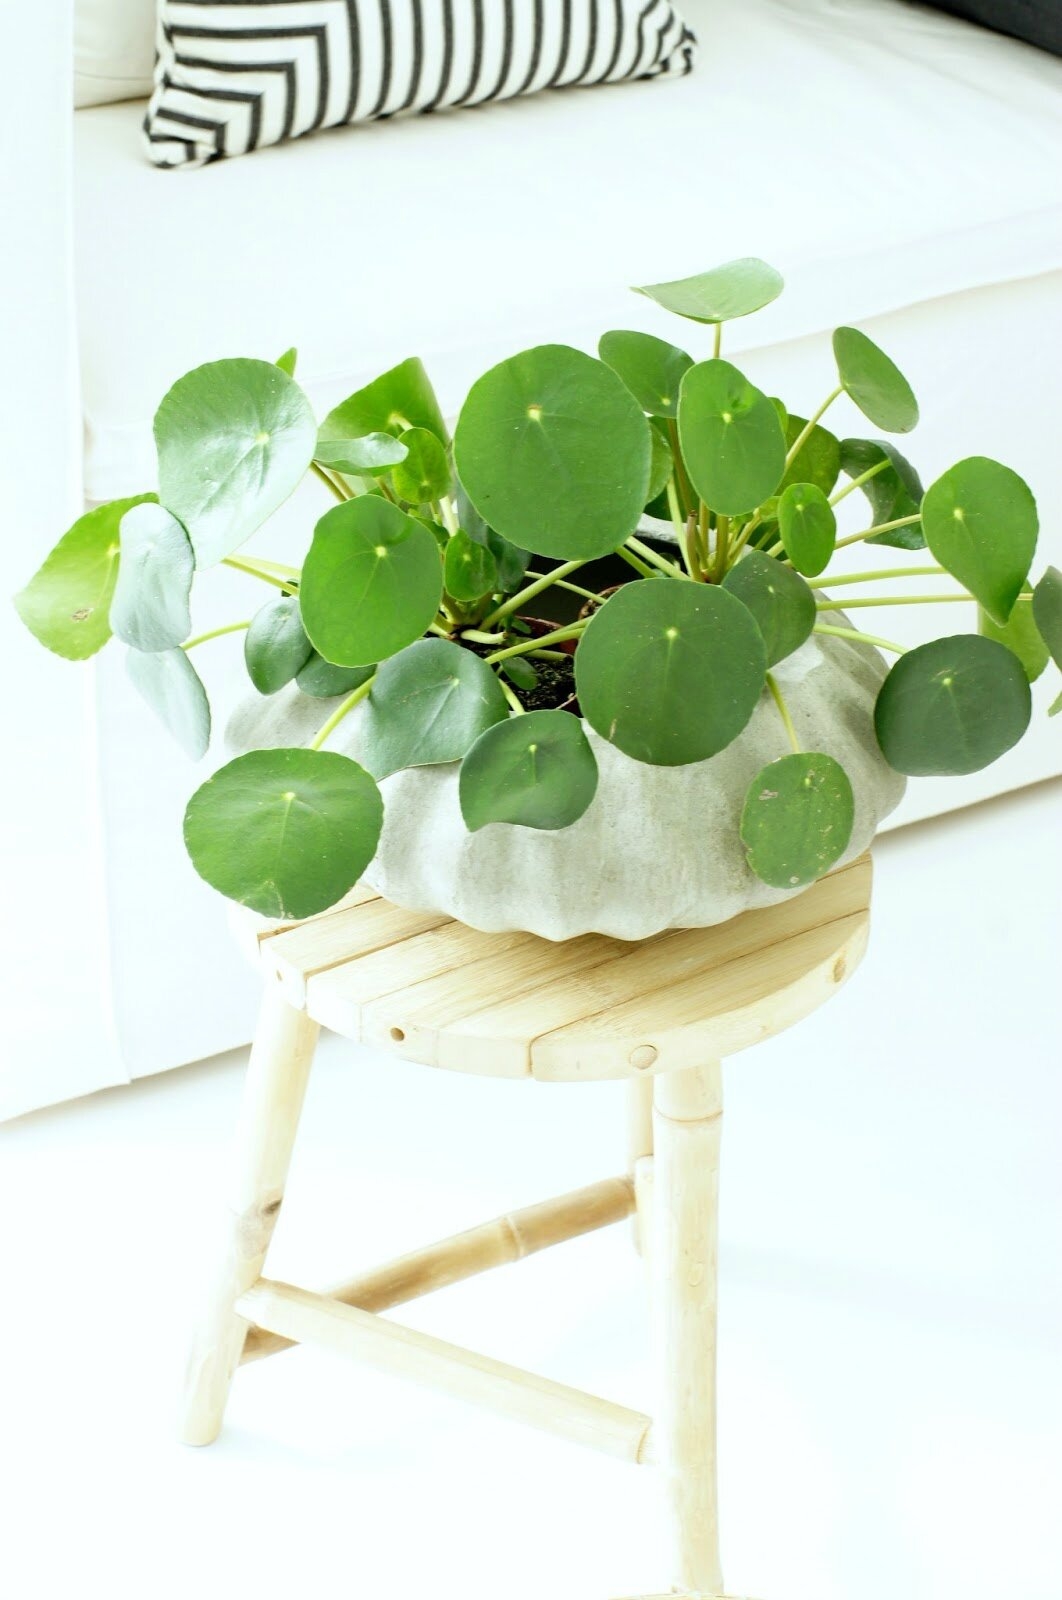 plantes d 39 int rieur pilea peperomioides ou plante monnaie chinoise always looking for. Black Bedroom Furniture Sets. Home Design Ideas